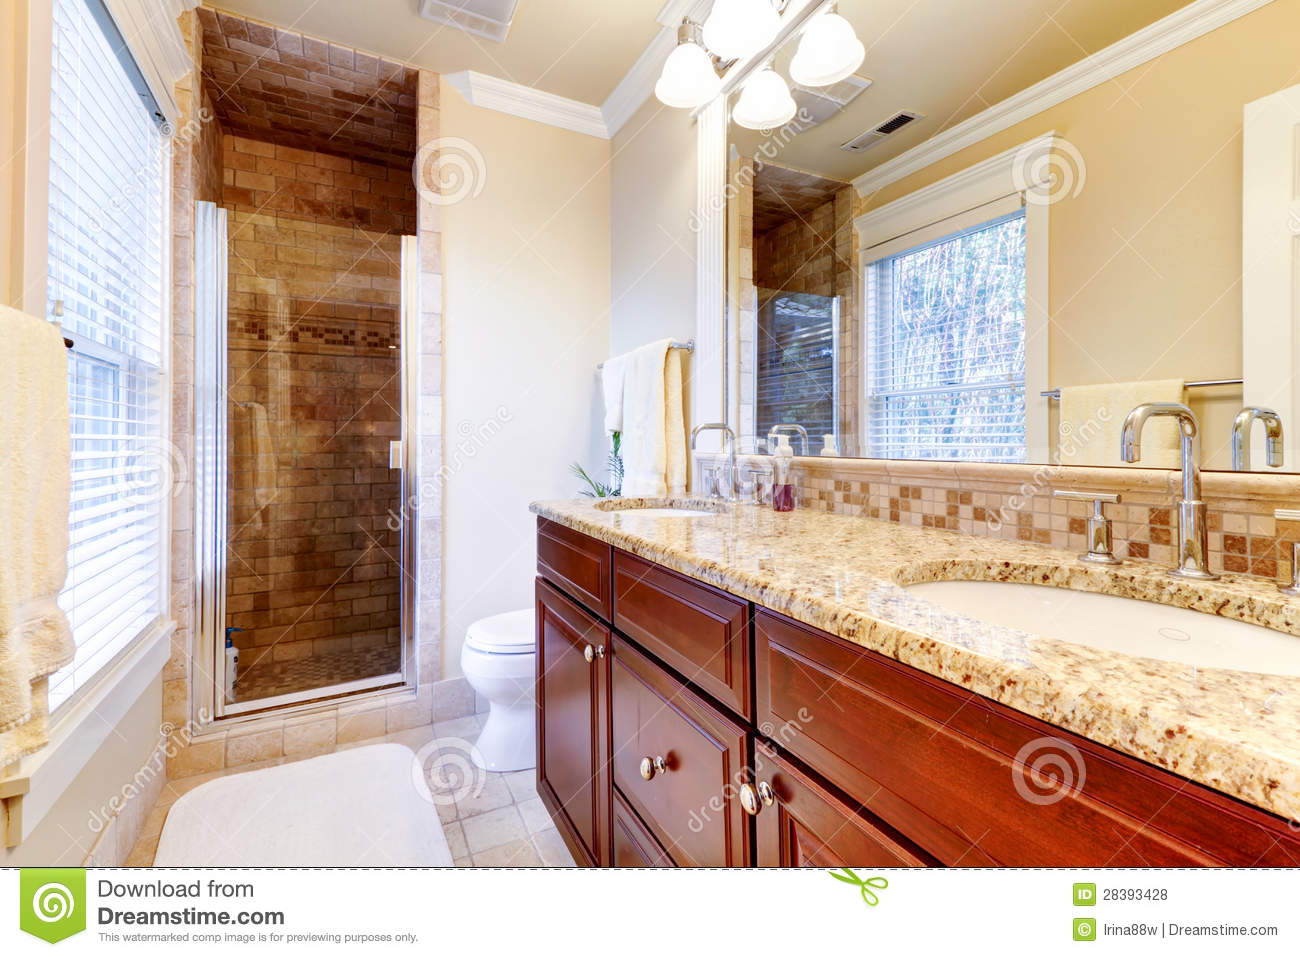 countertop cabinets for the bathroom large bathroom with cherry cabinets and granite countertop 23035